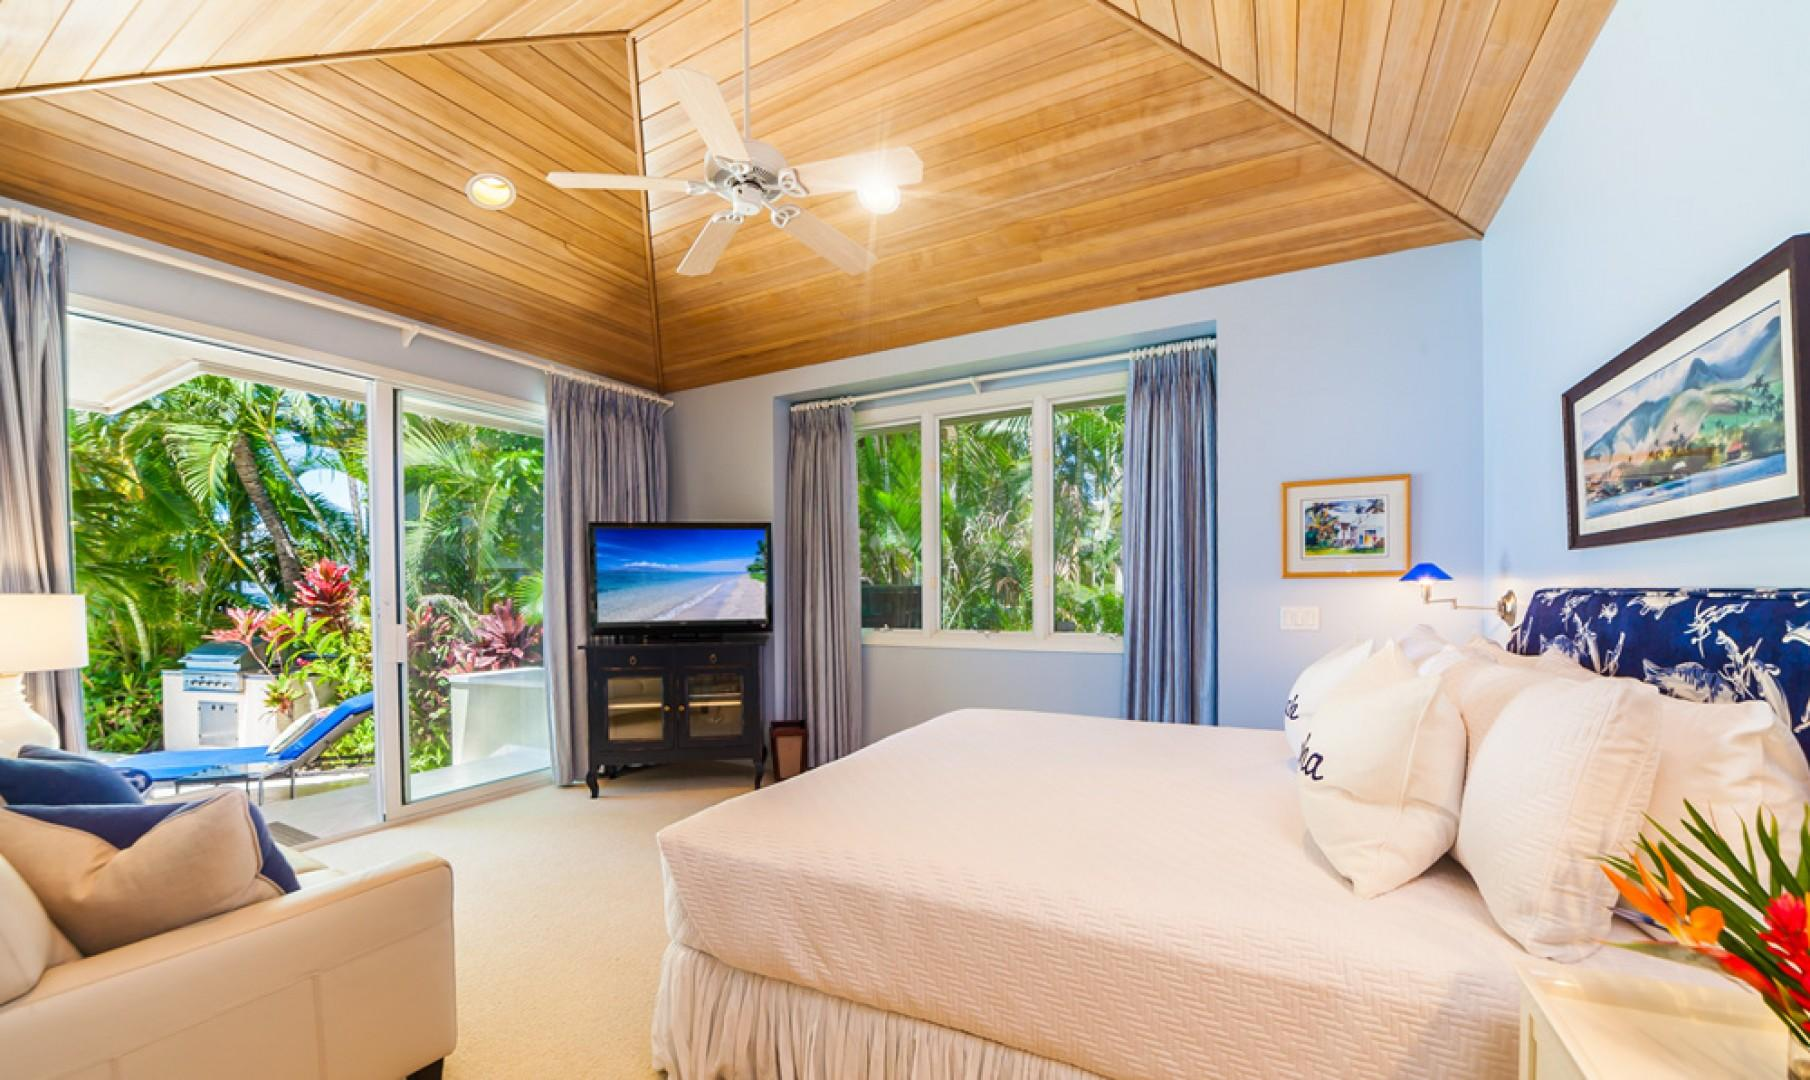 Opal Seas At Baby Beach - Main Level Poolside King Master Bedroom Two with En-Suite Private Tub/Shower Bath, HD TV/DVD, Sofa. Now Also With Two New White Bedside Tables.